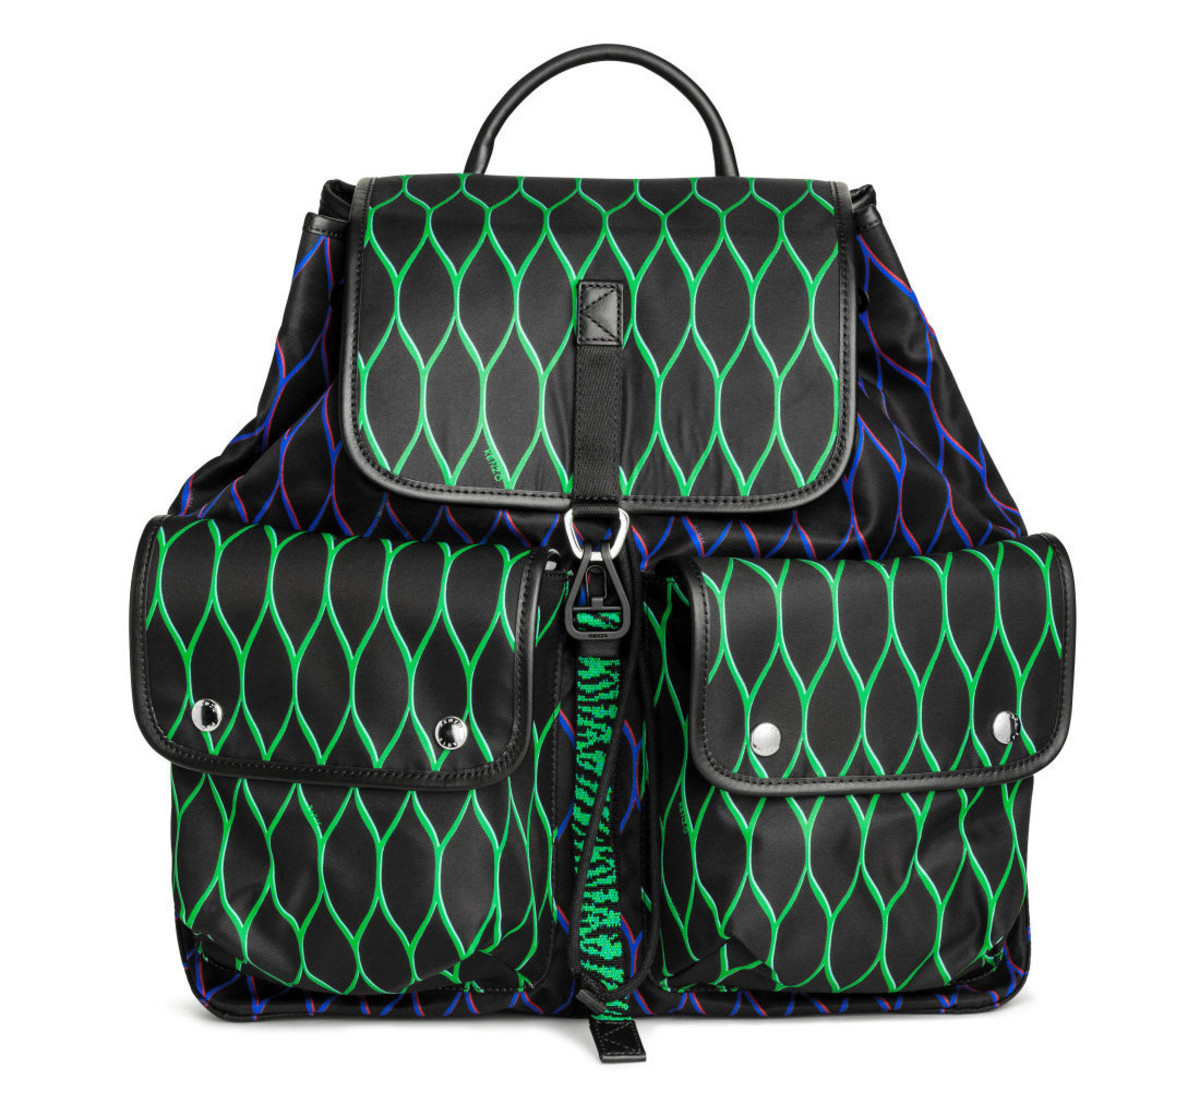 kenzo-h-and-m-patterned-backpack.jpg